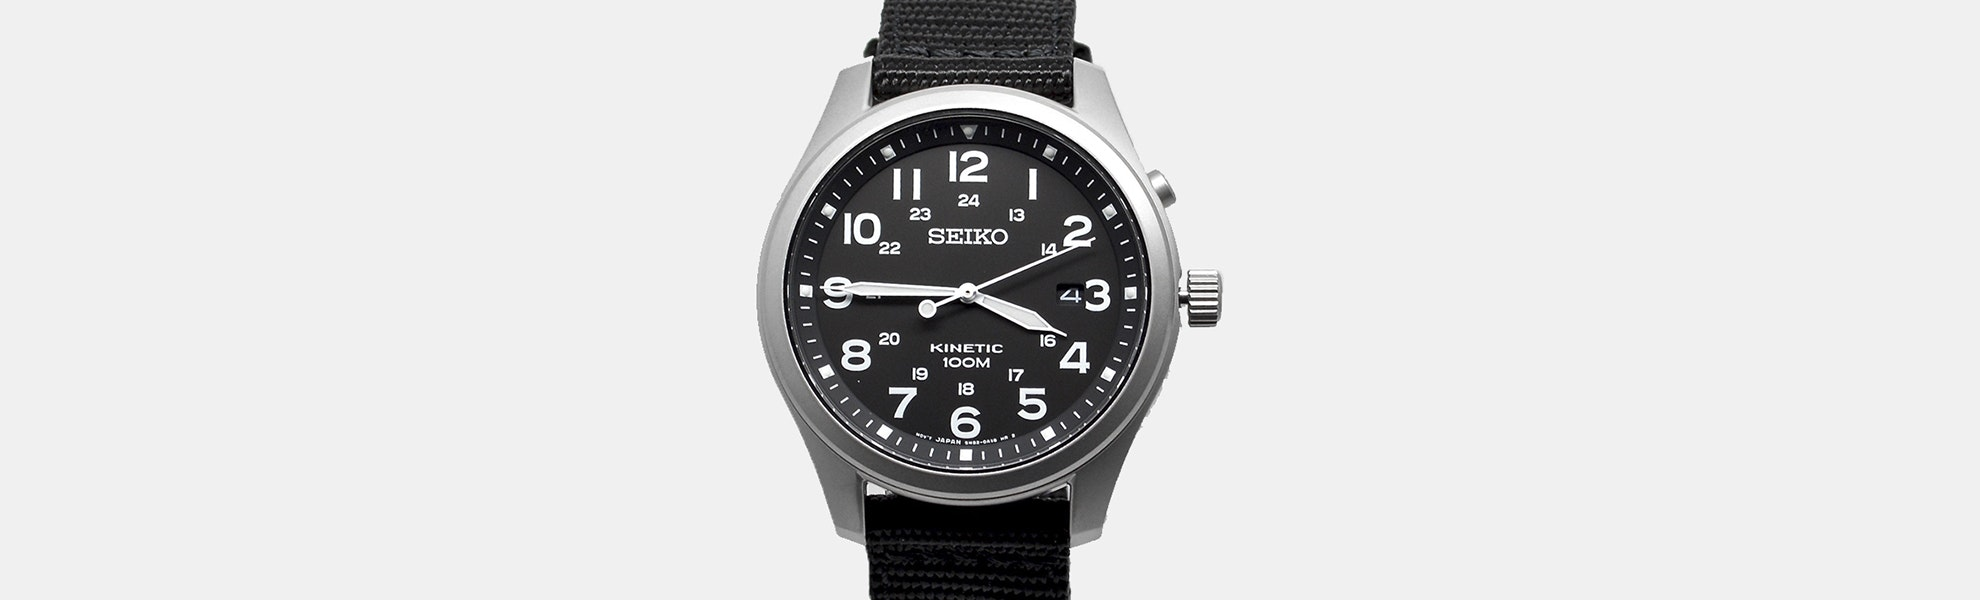 Seiko Kinetic Field Watch